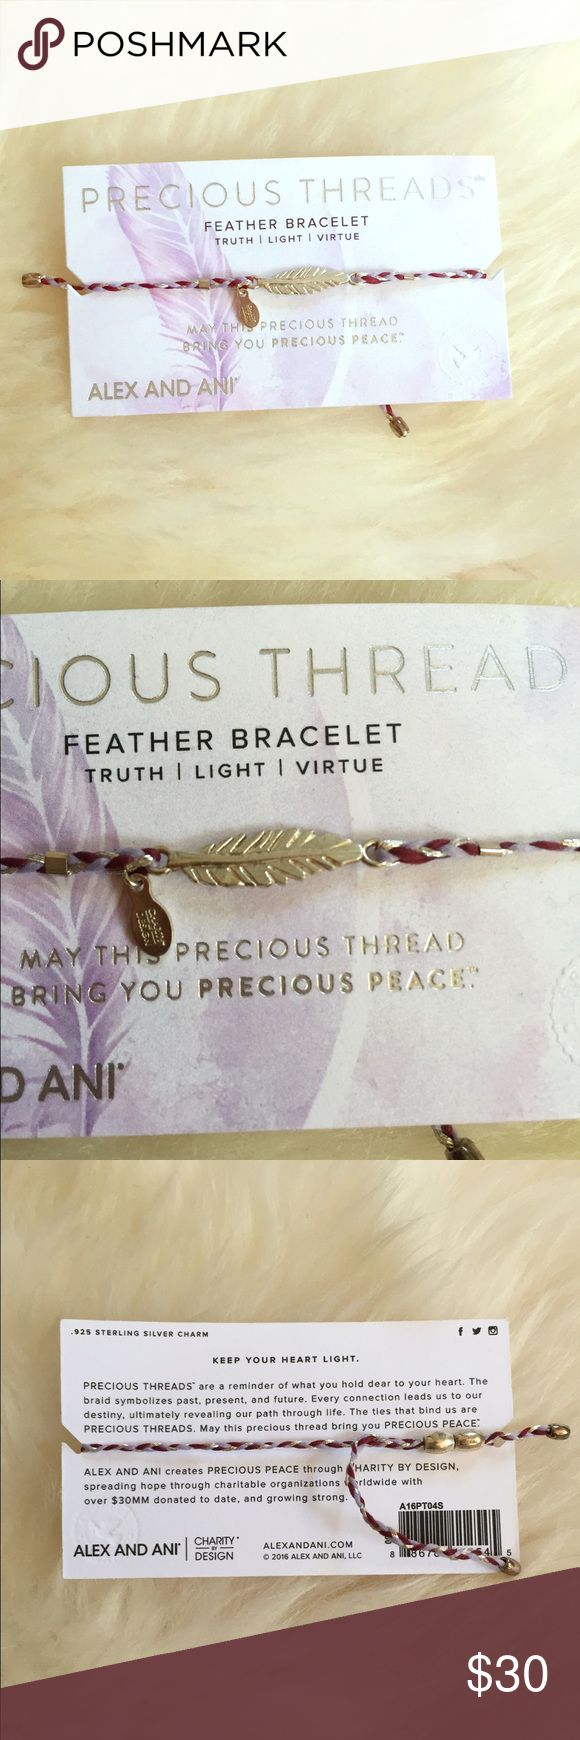 NEW Alex and Ani precious threads feather bracelet Brand new on cards it comes with with meaning. Adjustable. Retail $38 Alex & Ani Jewelry Bracelets